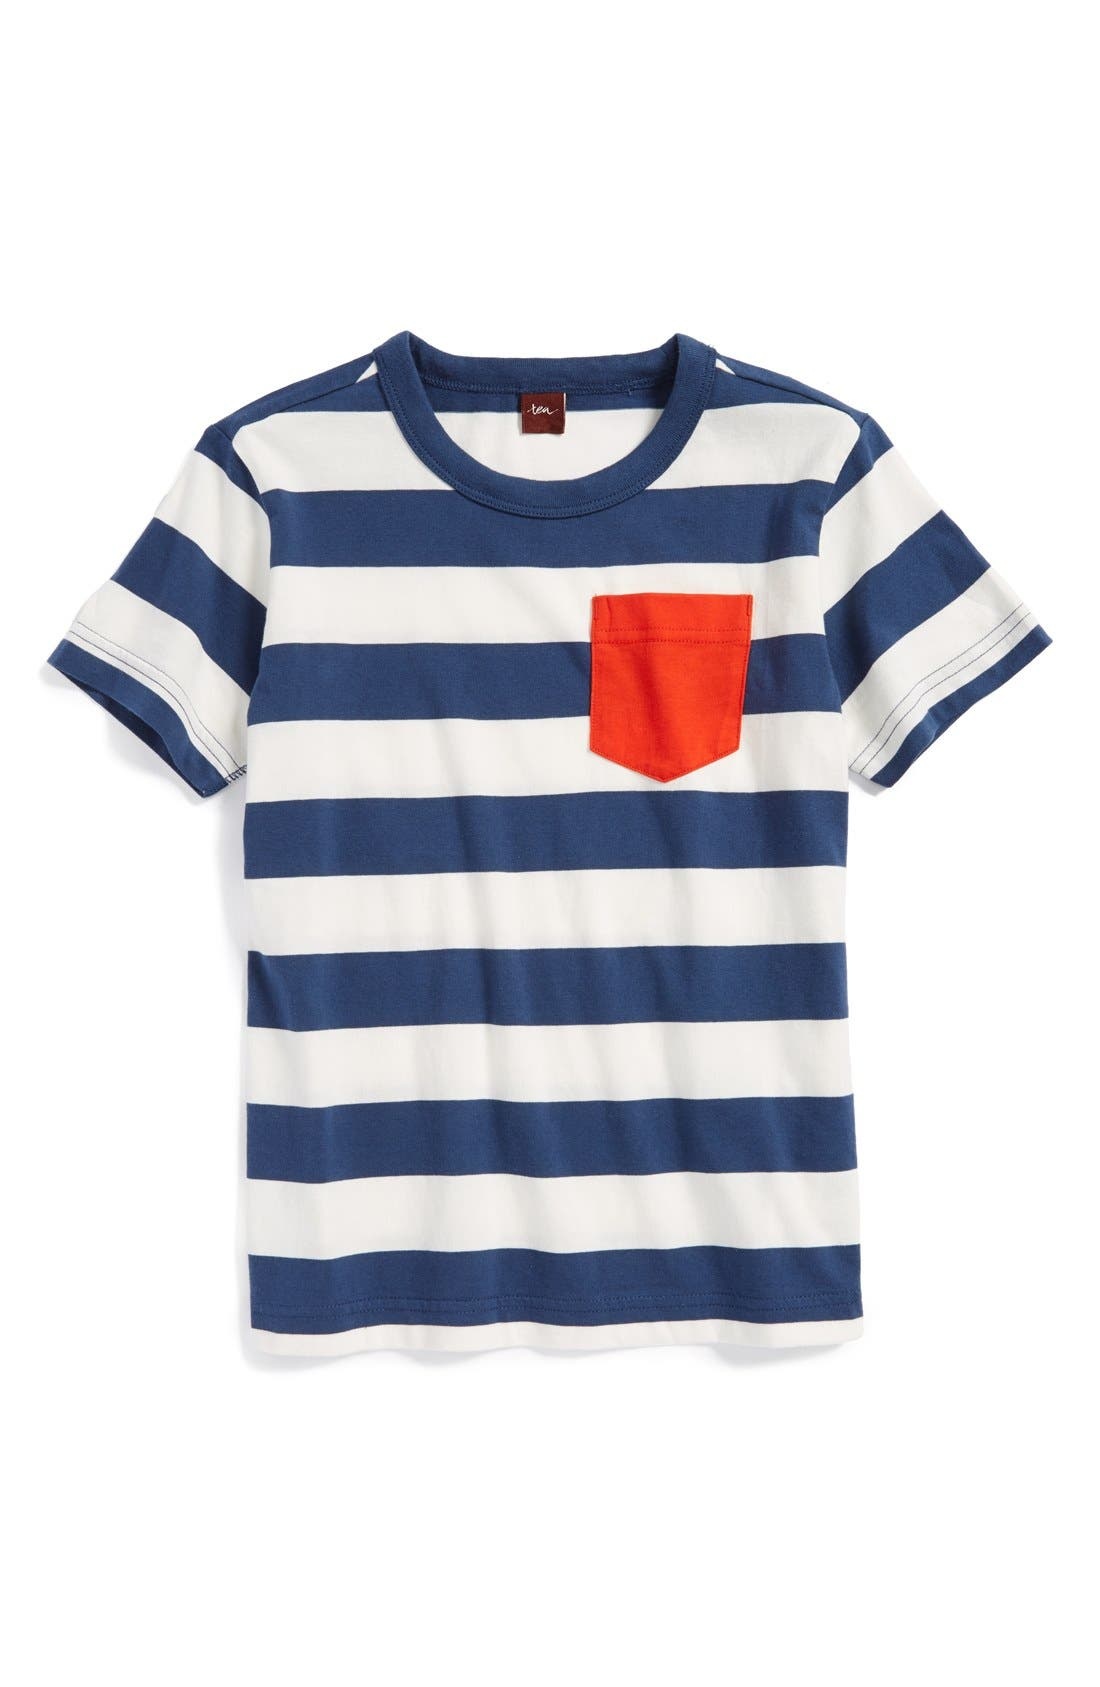 Main Image - Tea Collection 'Maritime' Stripe Cotton T-Shirt (Baby Boys)